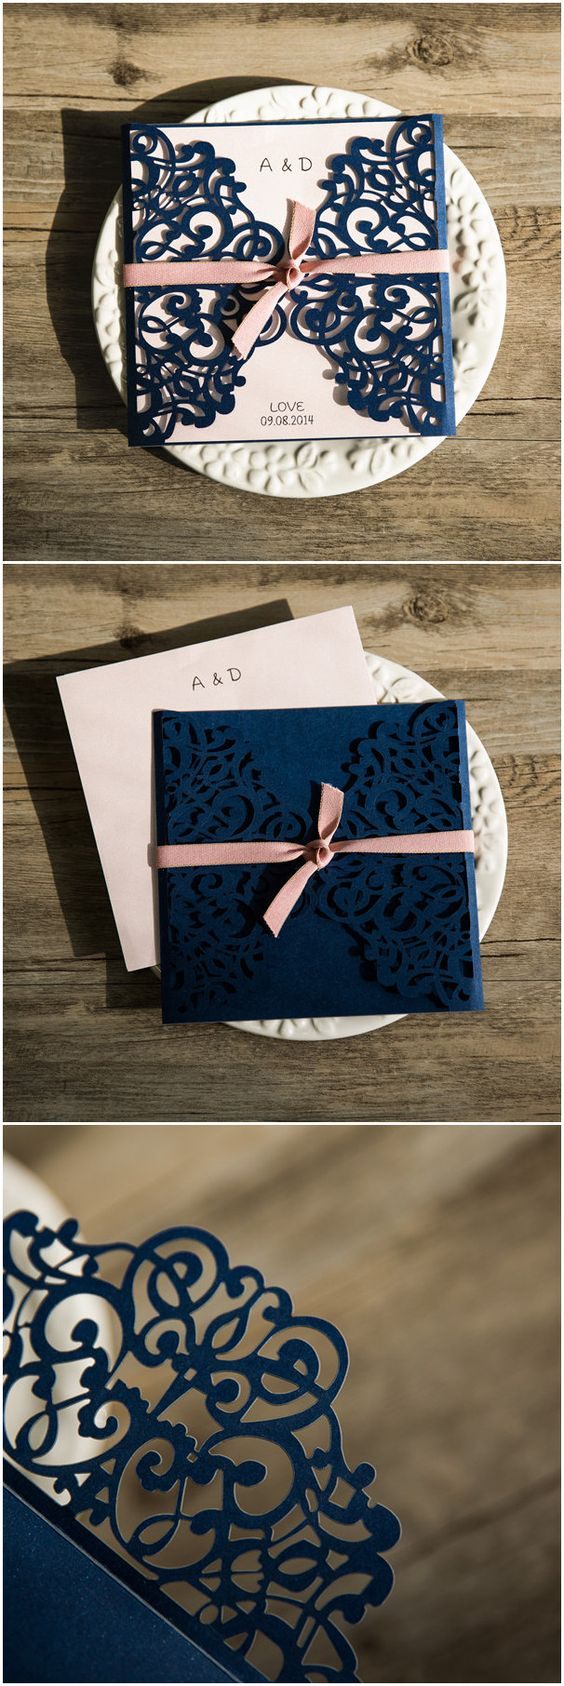 usd 2.09 classic navy blue blush pink laser cut wedding invitation EWWS072